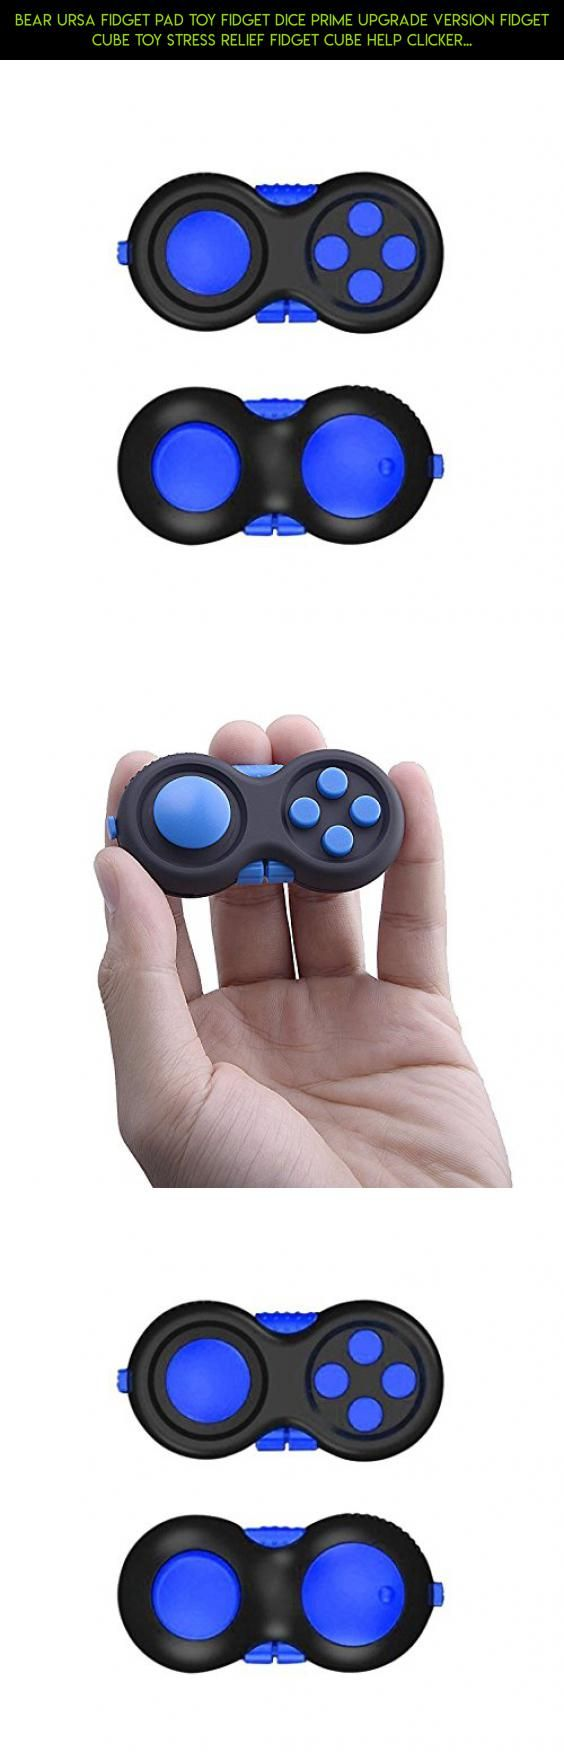 Bear Ursa Fidget Pad Toy Fidget Dice Prime Upgrade Version Fidget Cube Toy Stress Relief Fidget Cube Help Clicker Focus Mind Pressure Relief ABS Materials 6 Colors for Children and Adults (Blue) #camera #technology #parts #products #kit #fidget #relief #tech #plans #fpv #racing #drone #shopping #stress #gadgets #cube